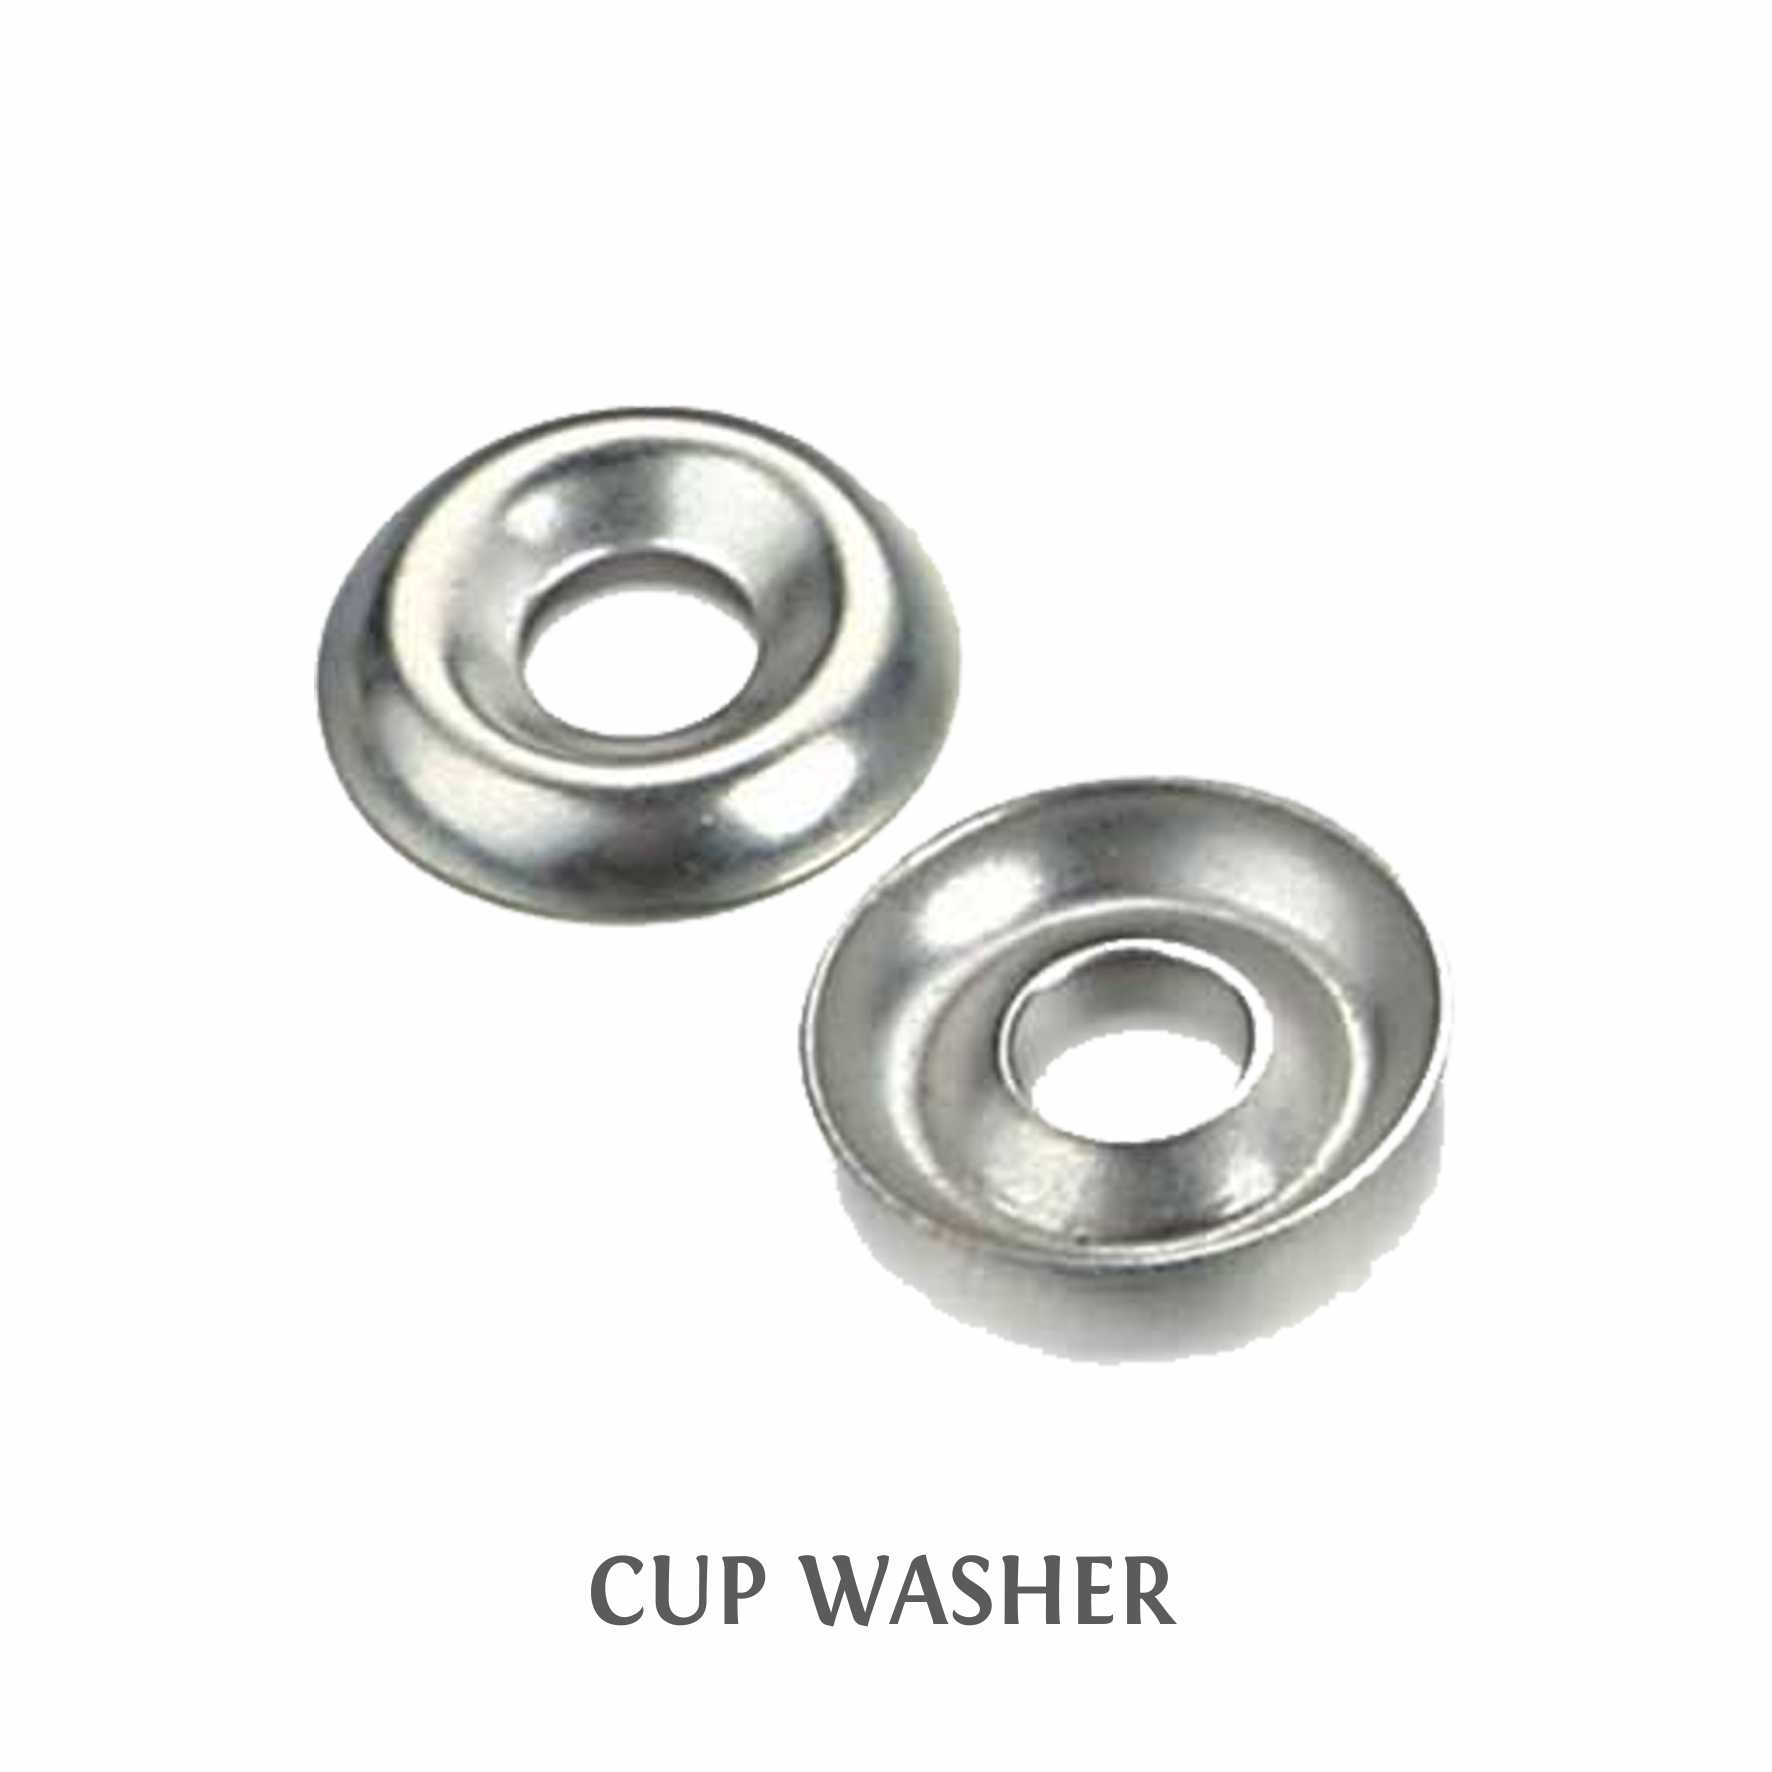 8-CUP WASHER